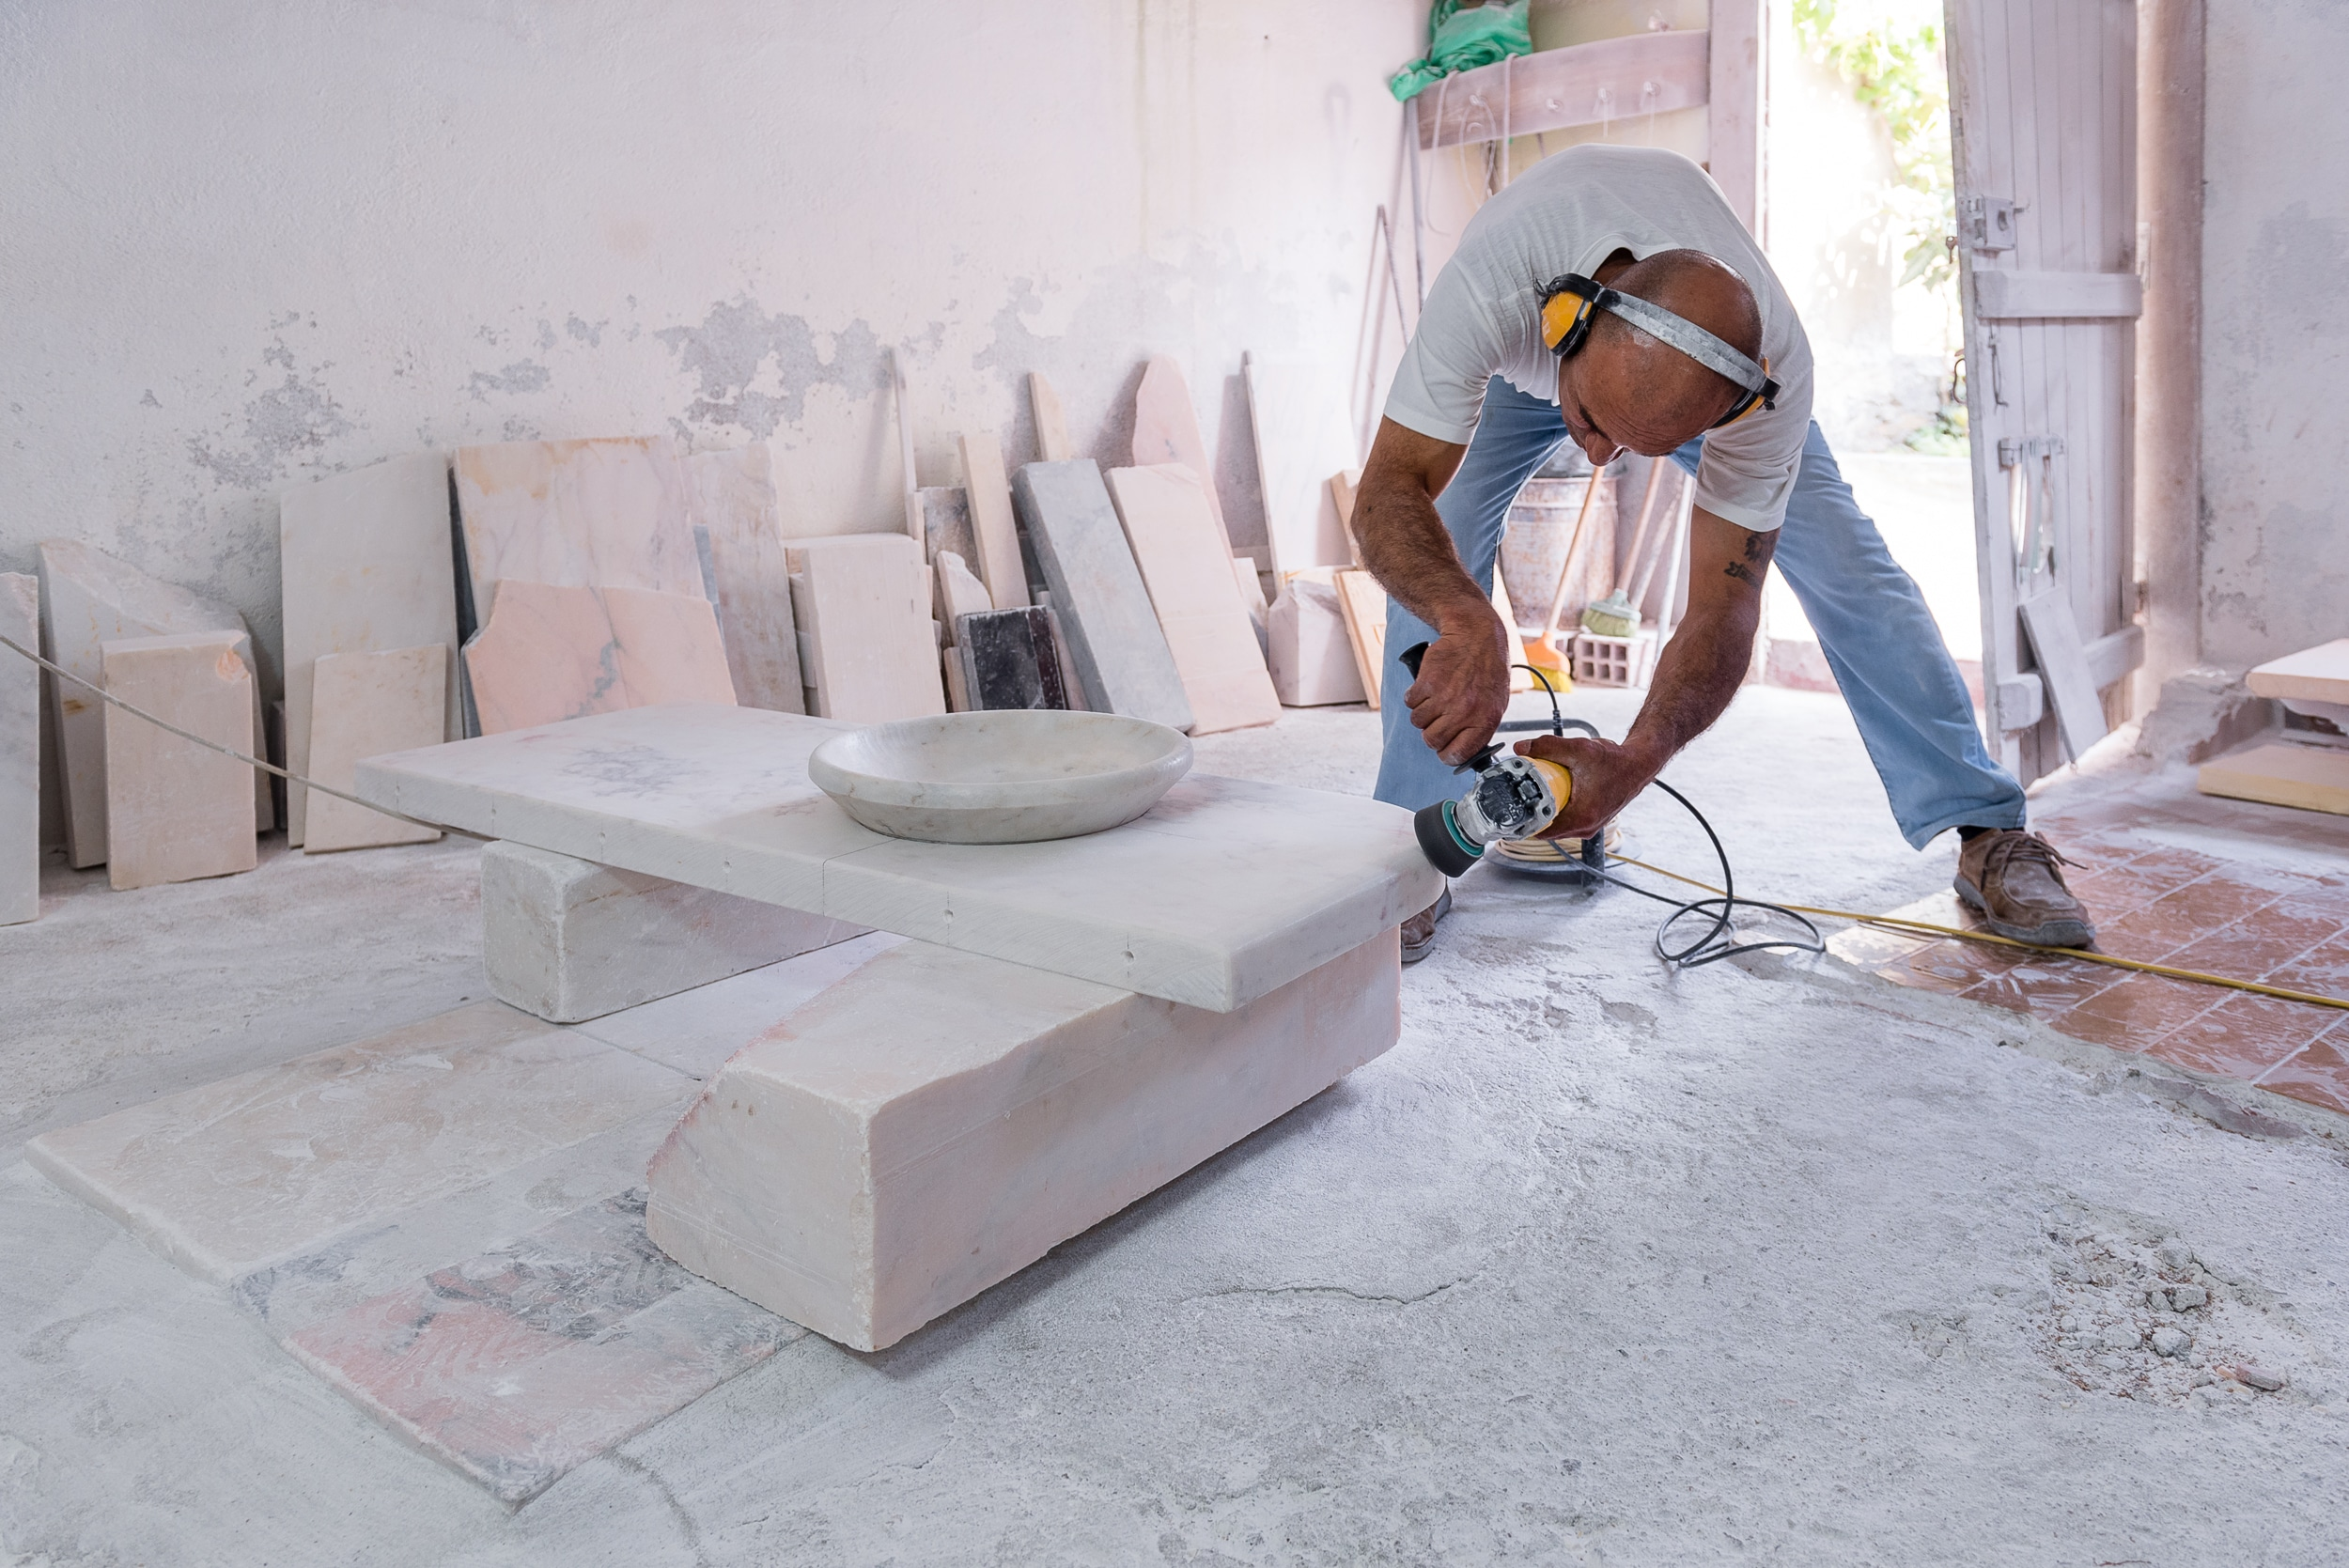 Dá Licença - About - Purpose - Working marble